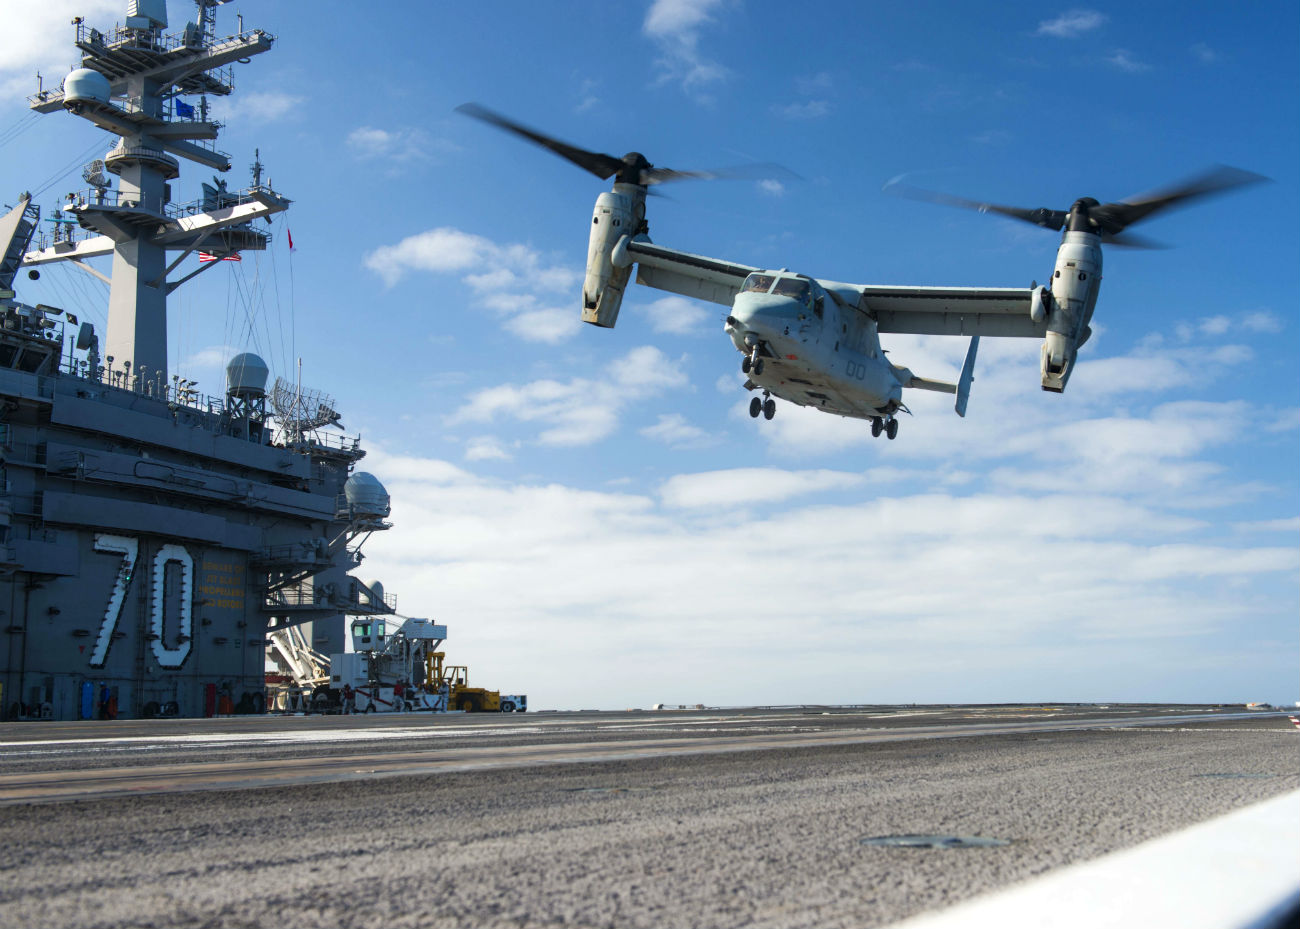 V-22 Osprey lands on carrier